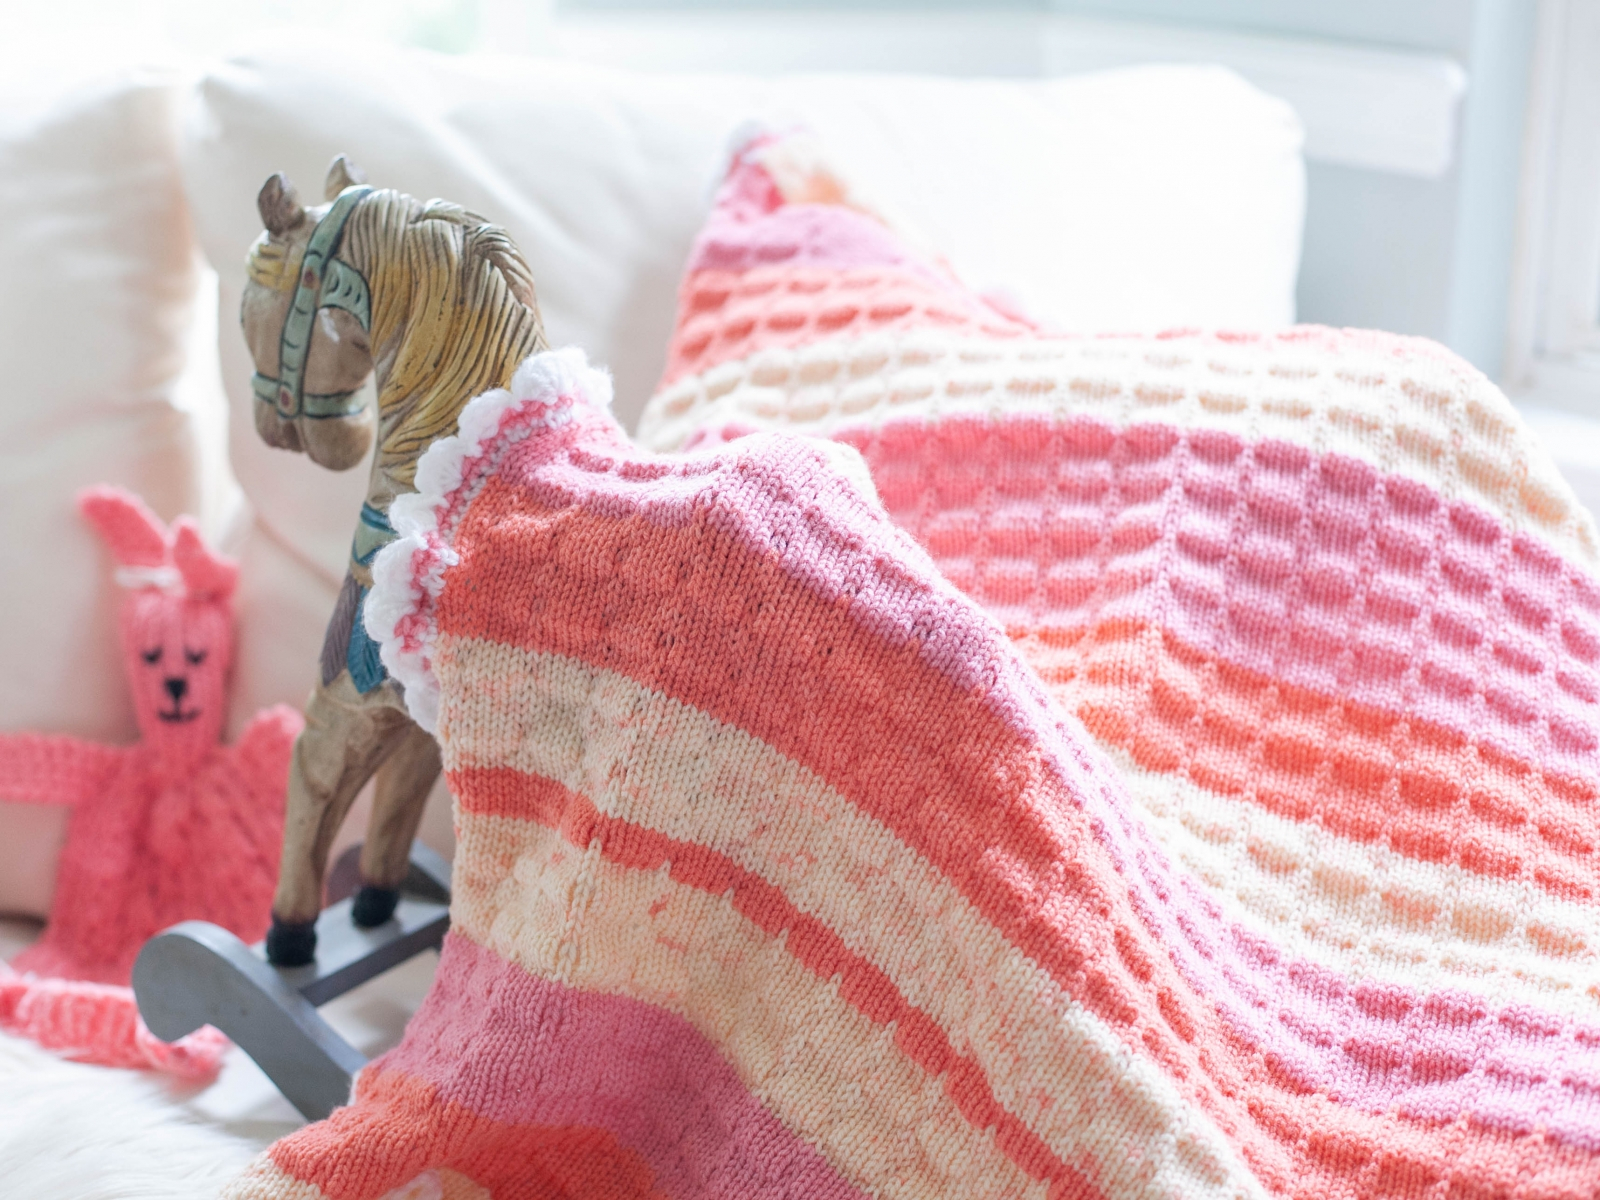 Baby Girl Blanket Knitting Patterns Loom Knit Ba Blanket With Crochet Edging Pattern Stroller Size Tuck Stitch Make For A Boy Or Girl Pdf Pattern Download